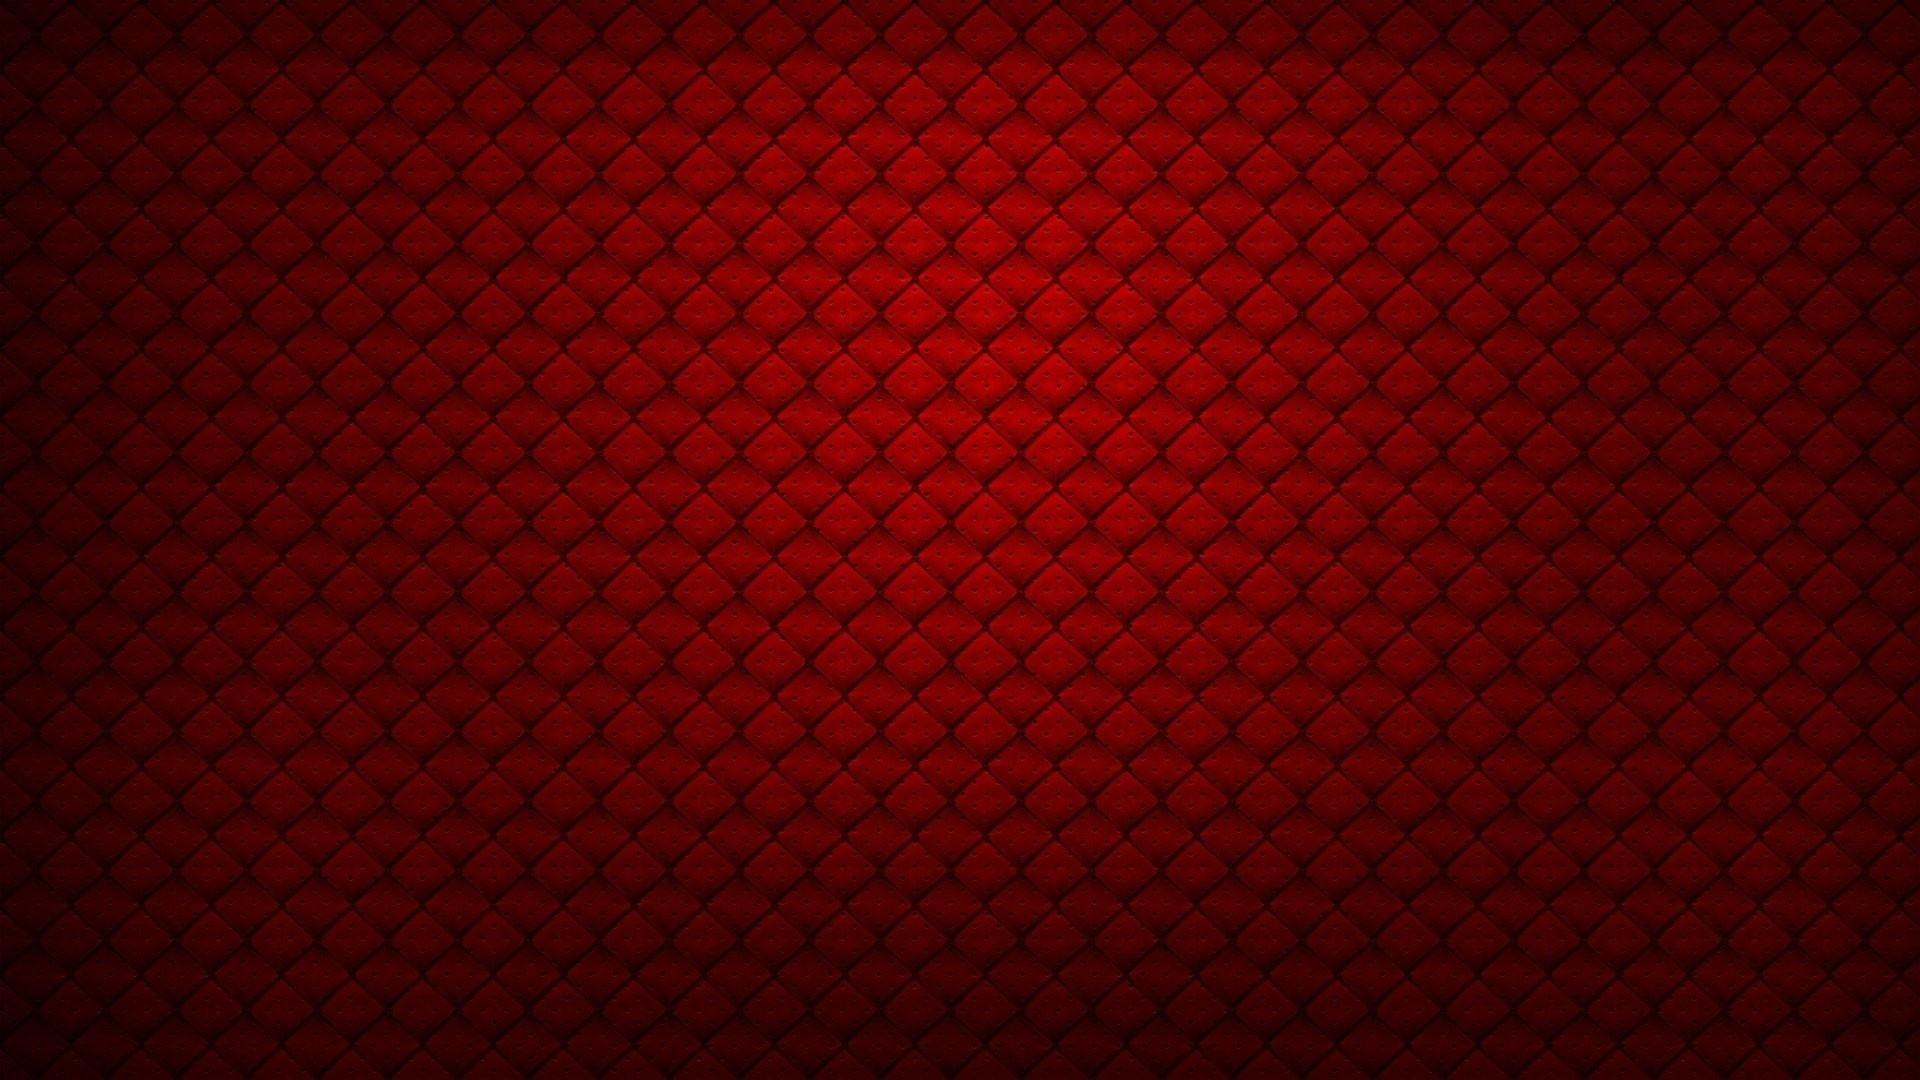 Maroon Wallpaper Picture hd